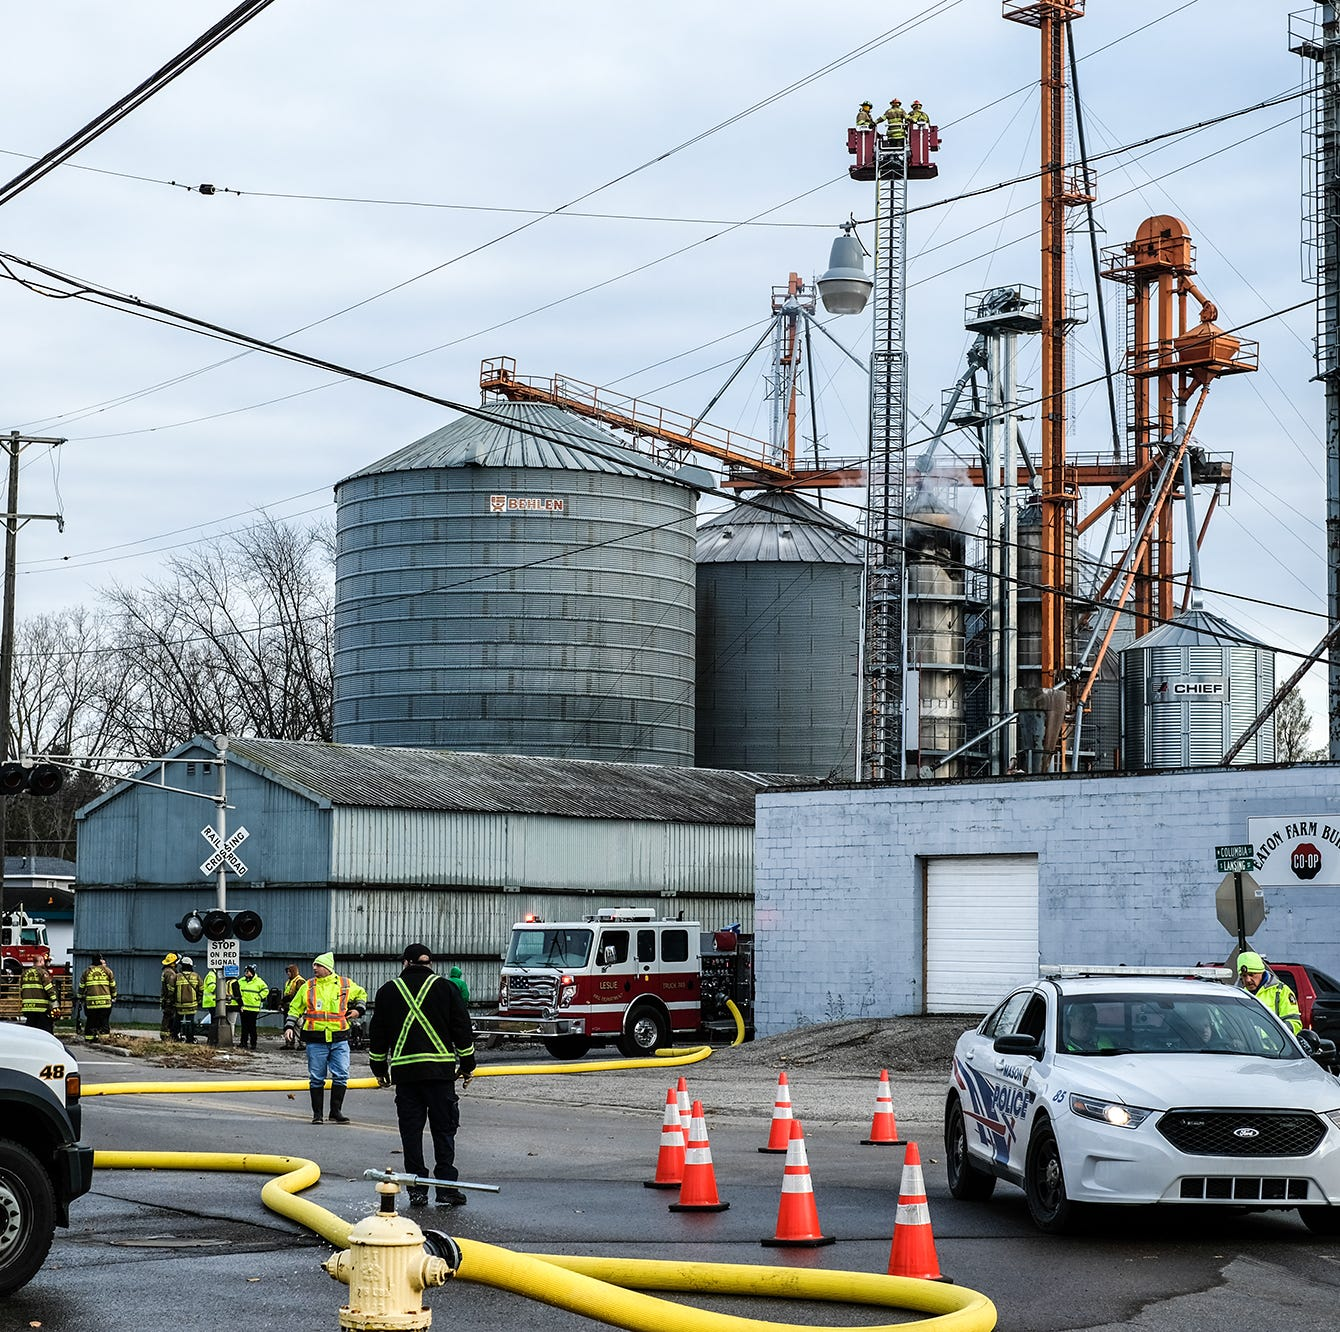 Crews from 4 fire departments on scene of blaze at agricultural facility in Mason